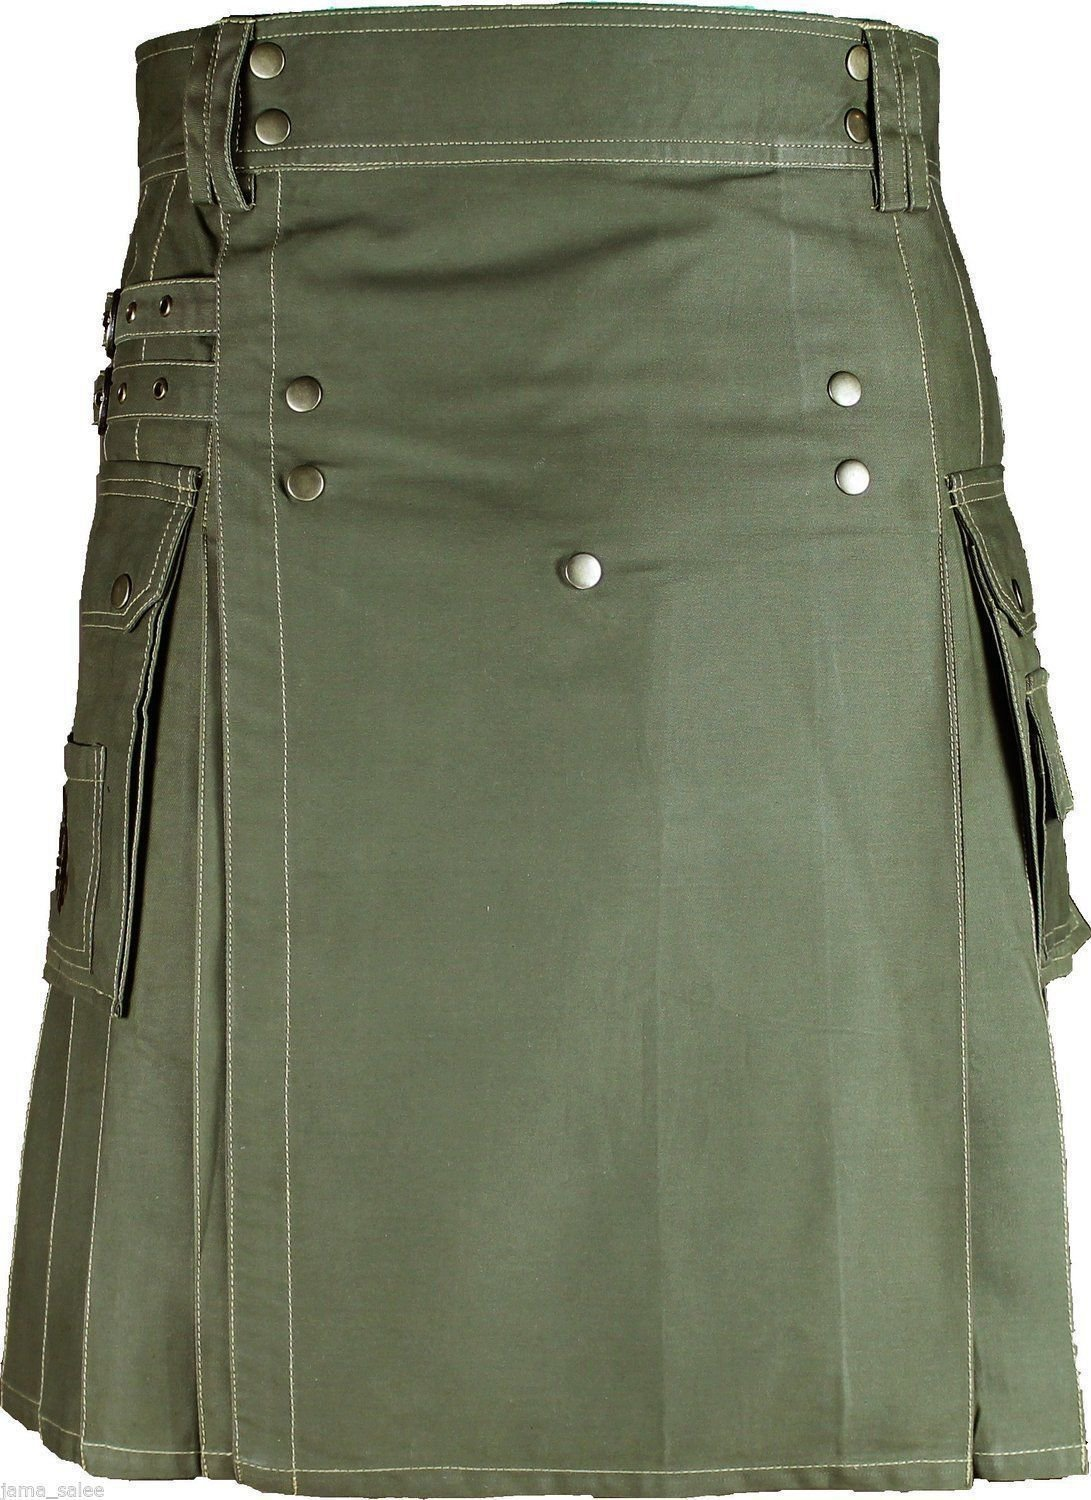 Unisex Modern Utility Kilt Olive Green Cotton Kilt Brass Material Scottish Kilt Fit to 34 Waist